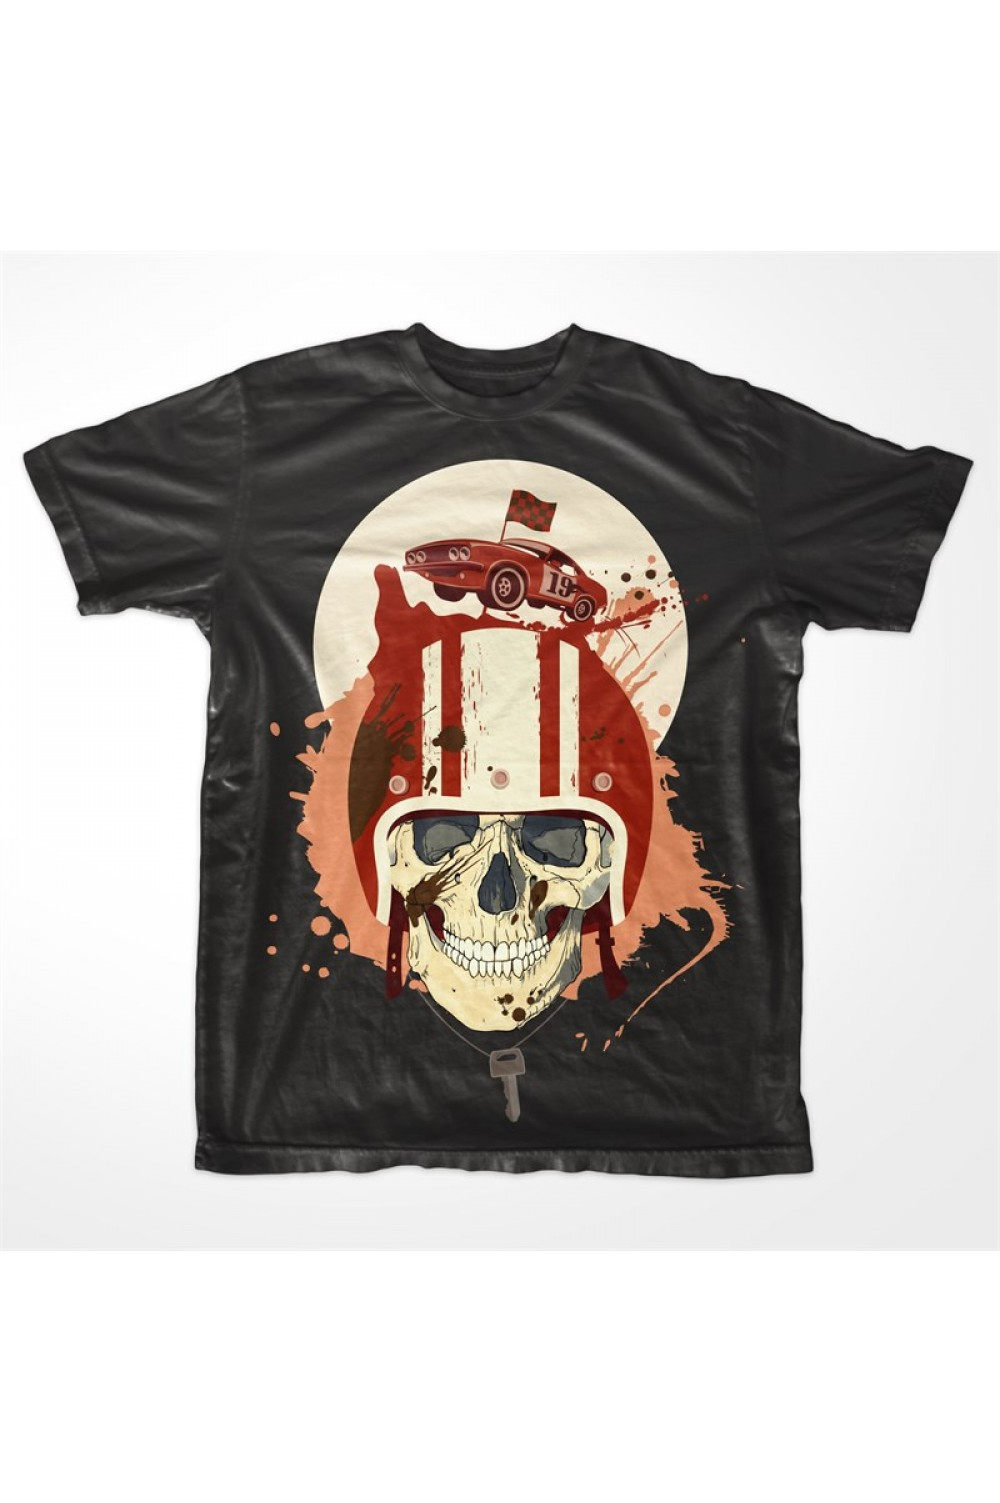 Racing Skull Men Printed T shirt 4007A